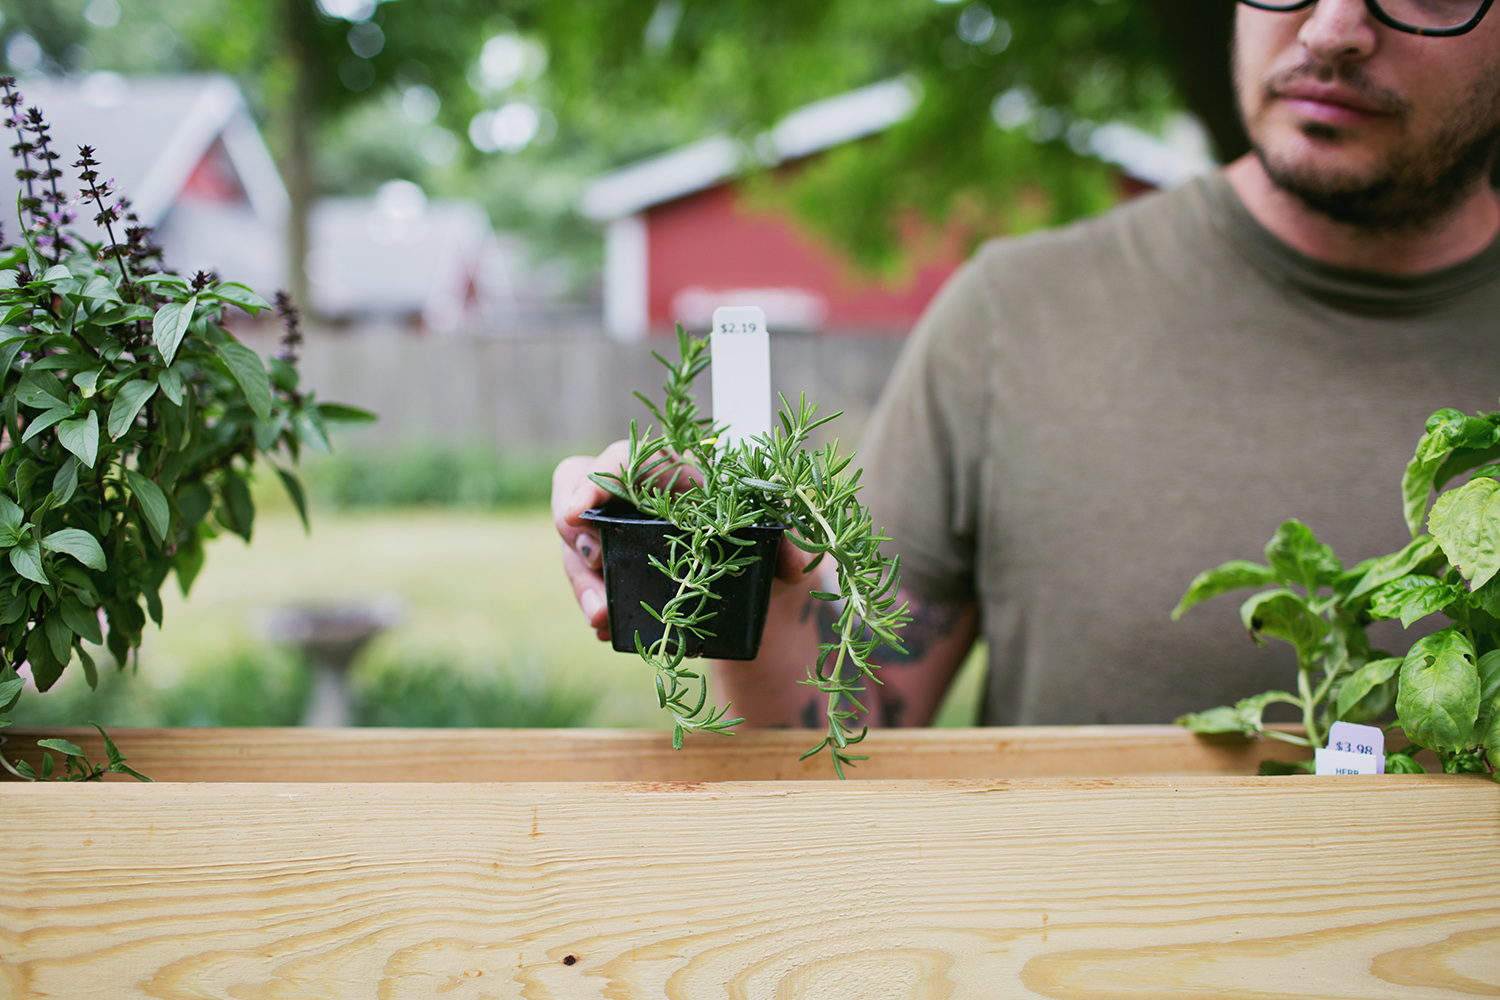 Build your own pergola - planting herbs (click for more)